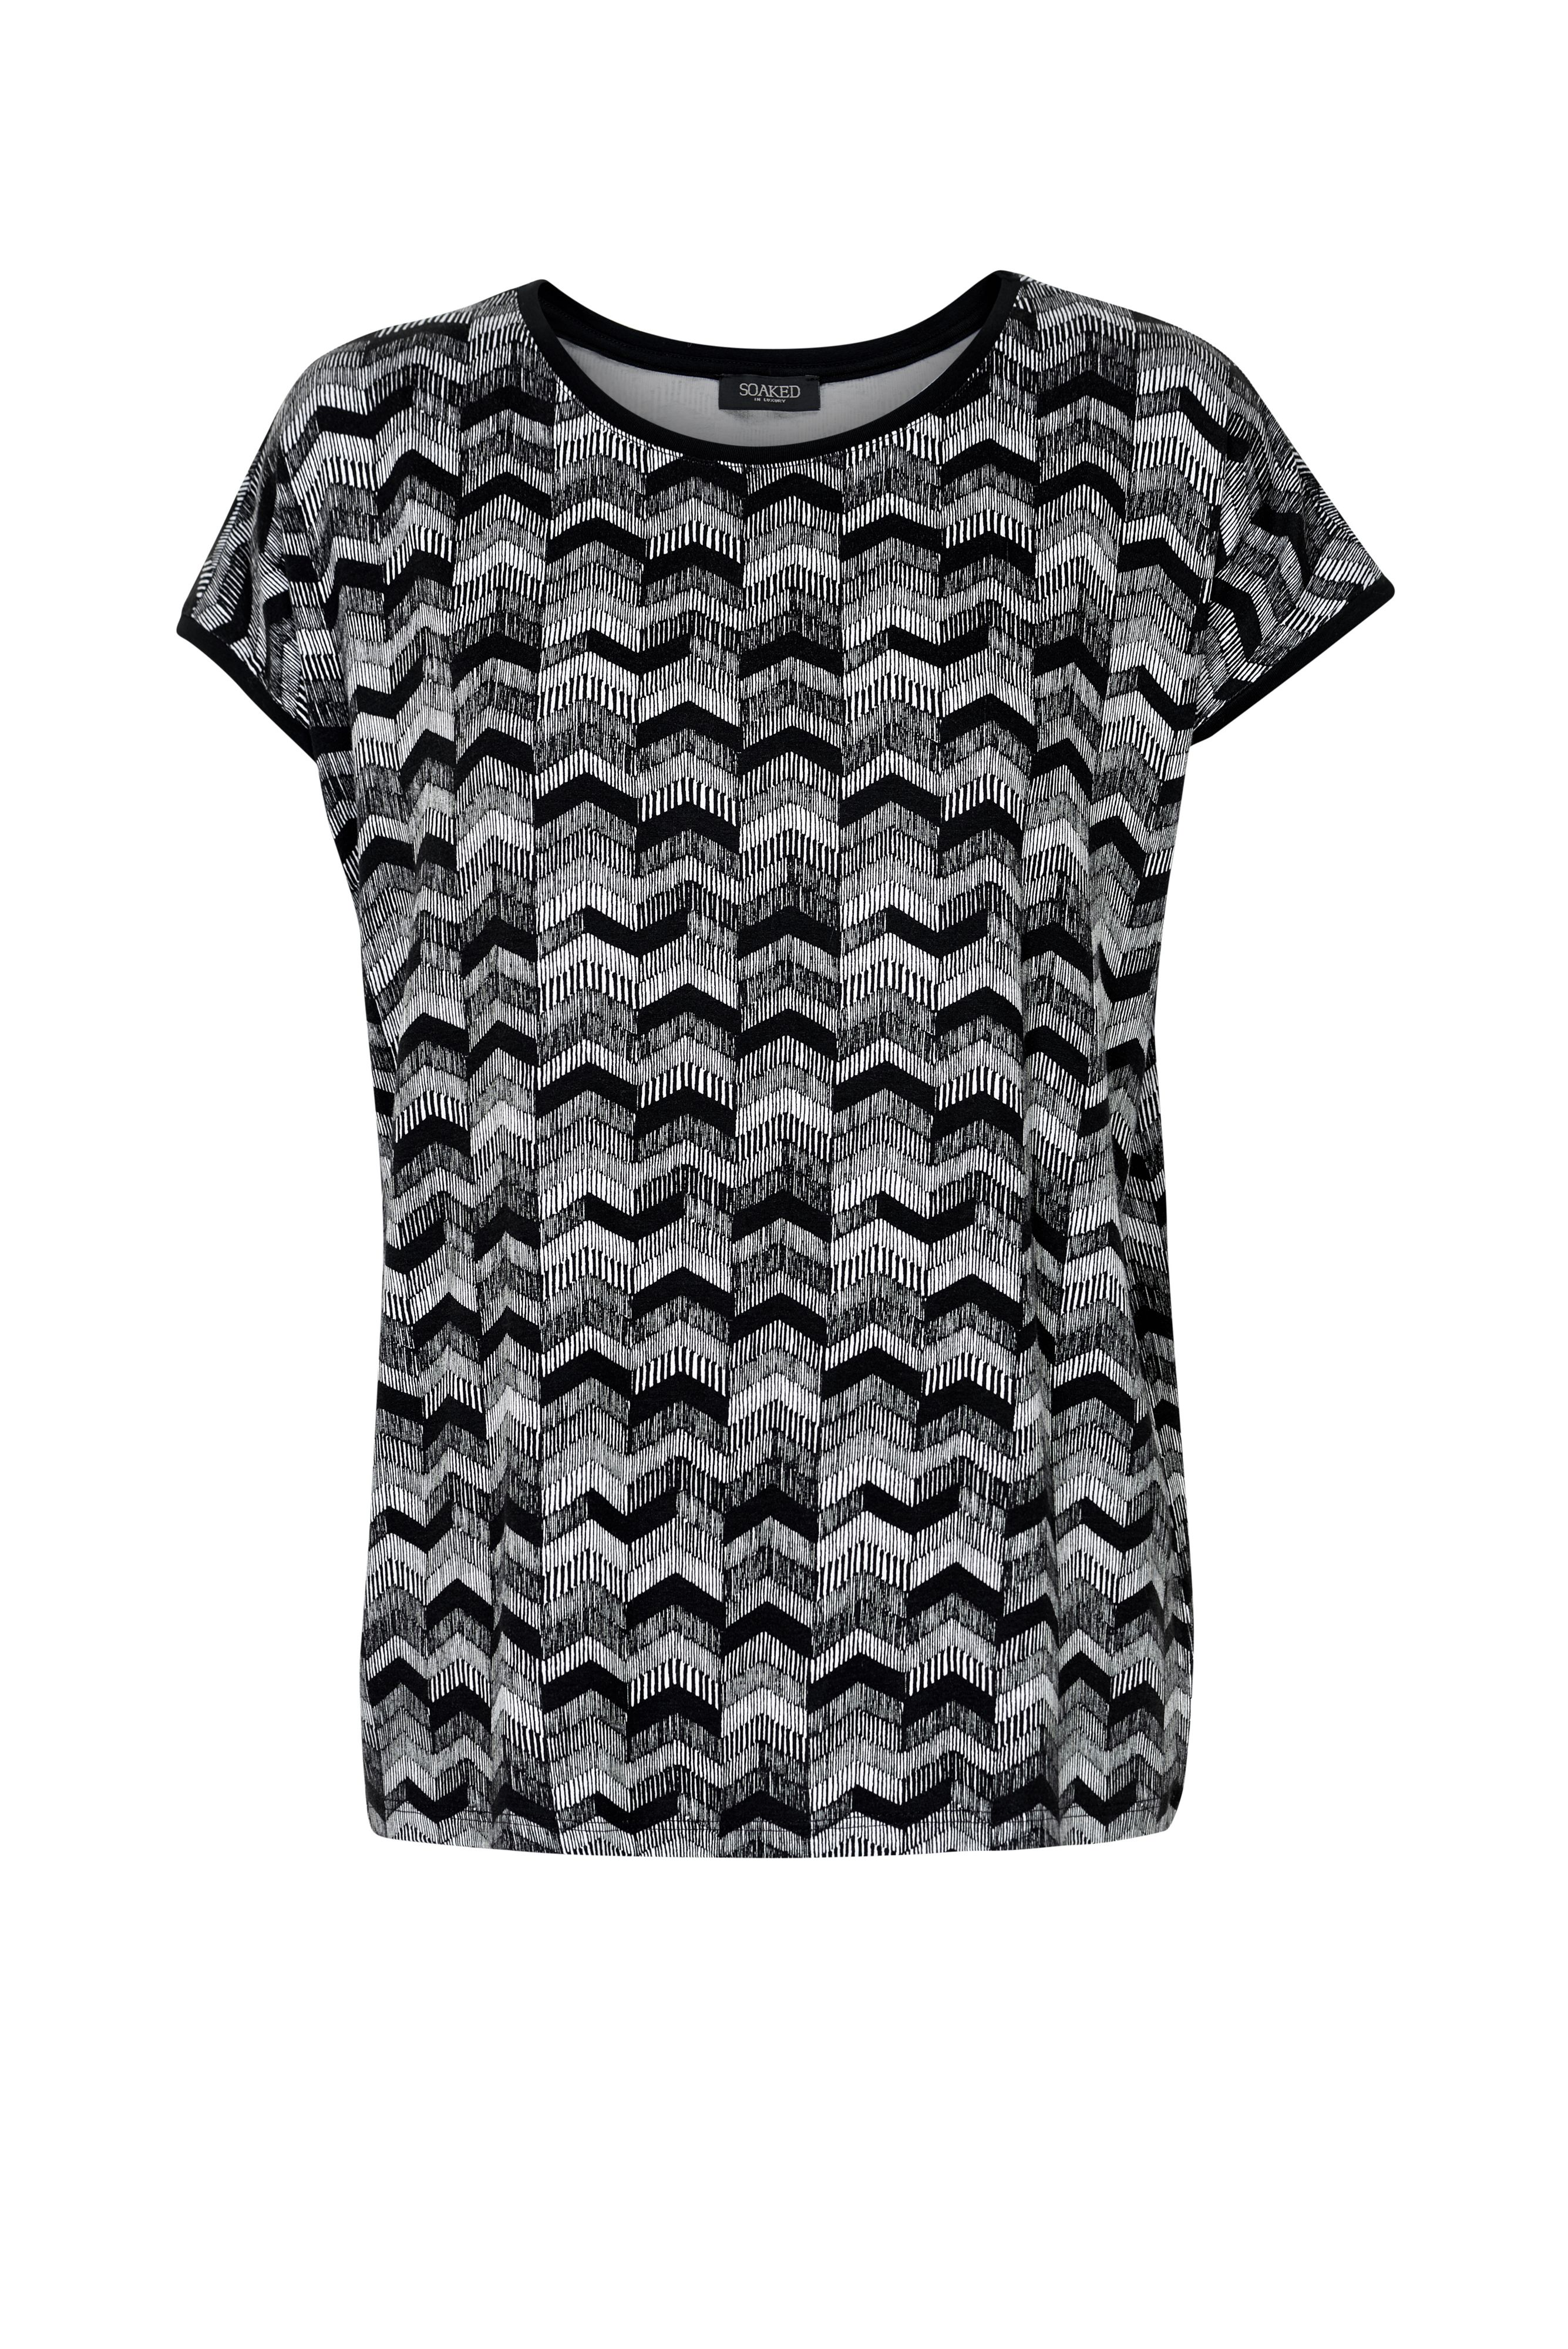 Soaked in Luxury Soaked in Luxury Zigzag Print Top, Multi-Coloured